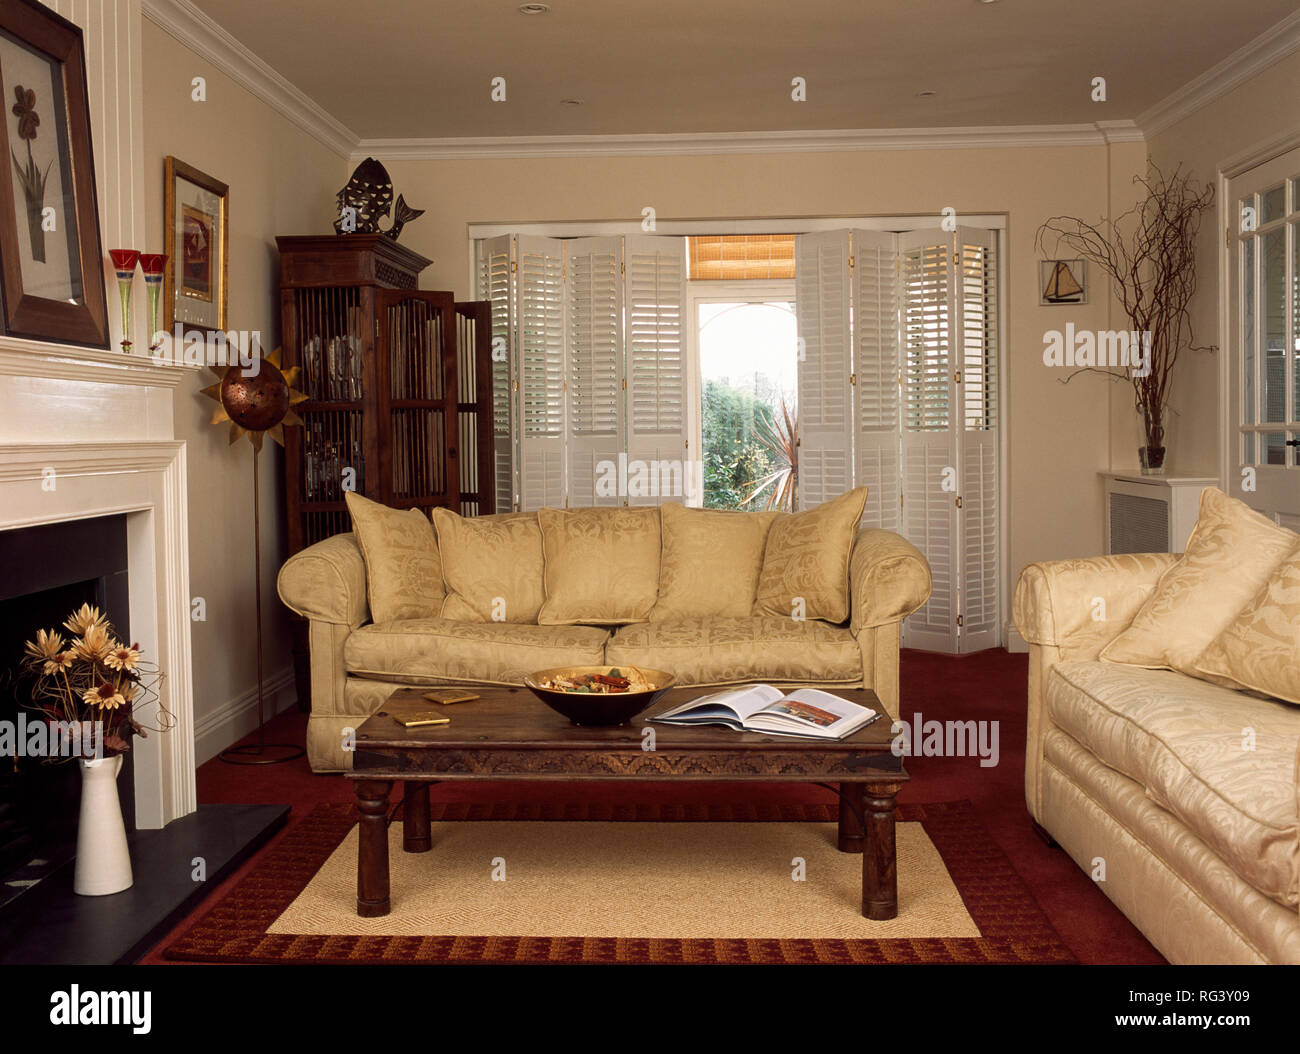 Cream Sofas And Plantation Shutters In Dated Living Room